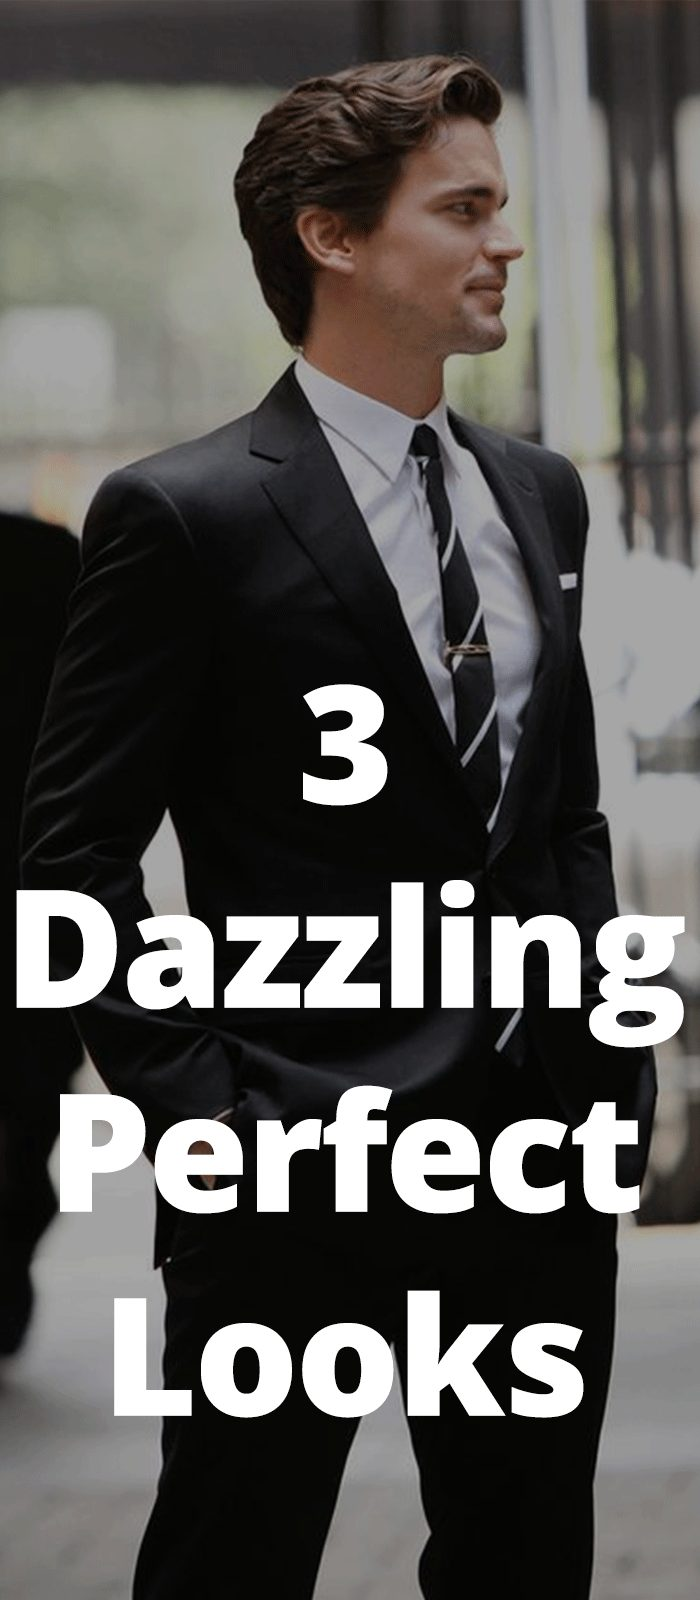 3 Dazzling Perfect Looks